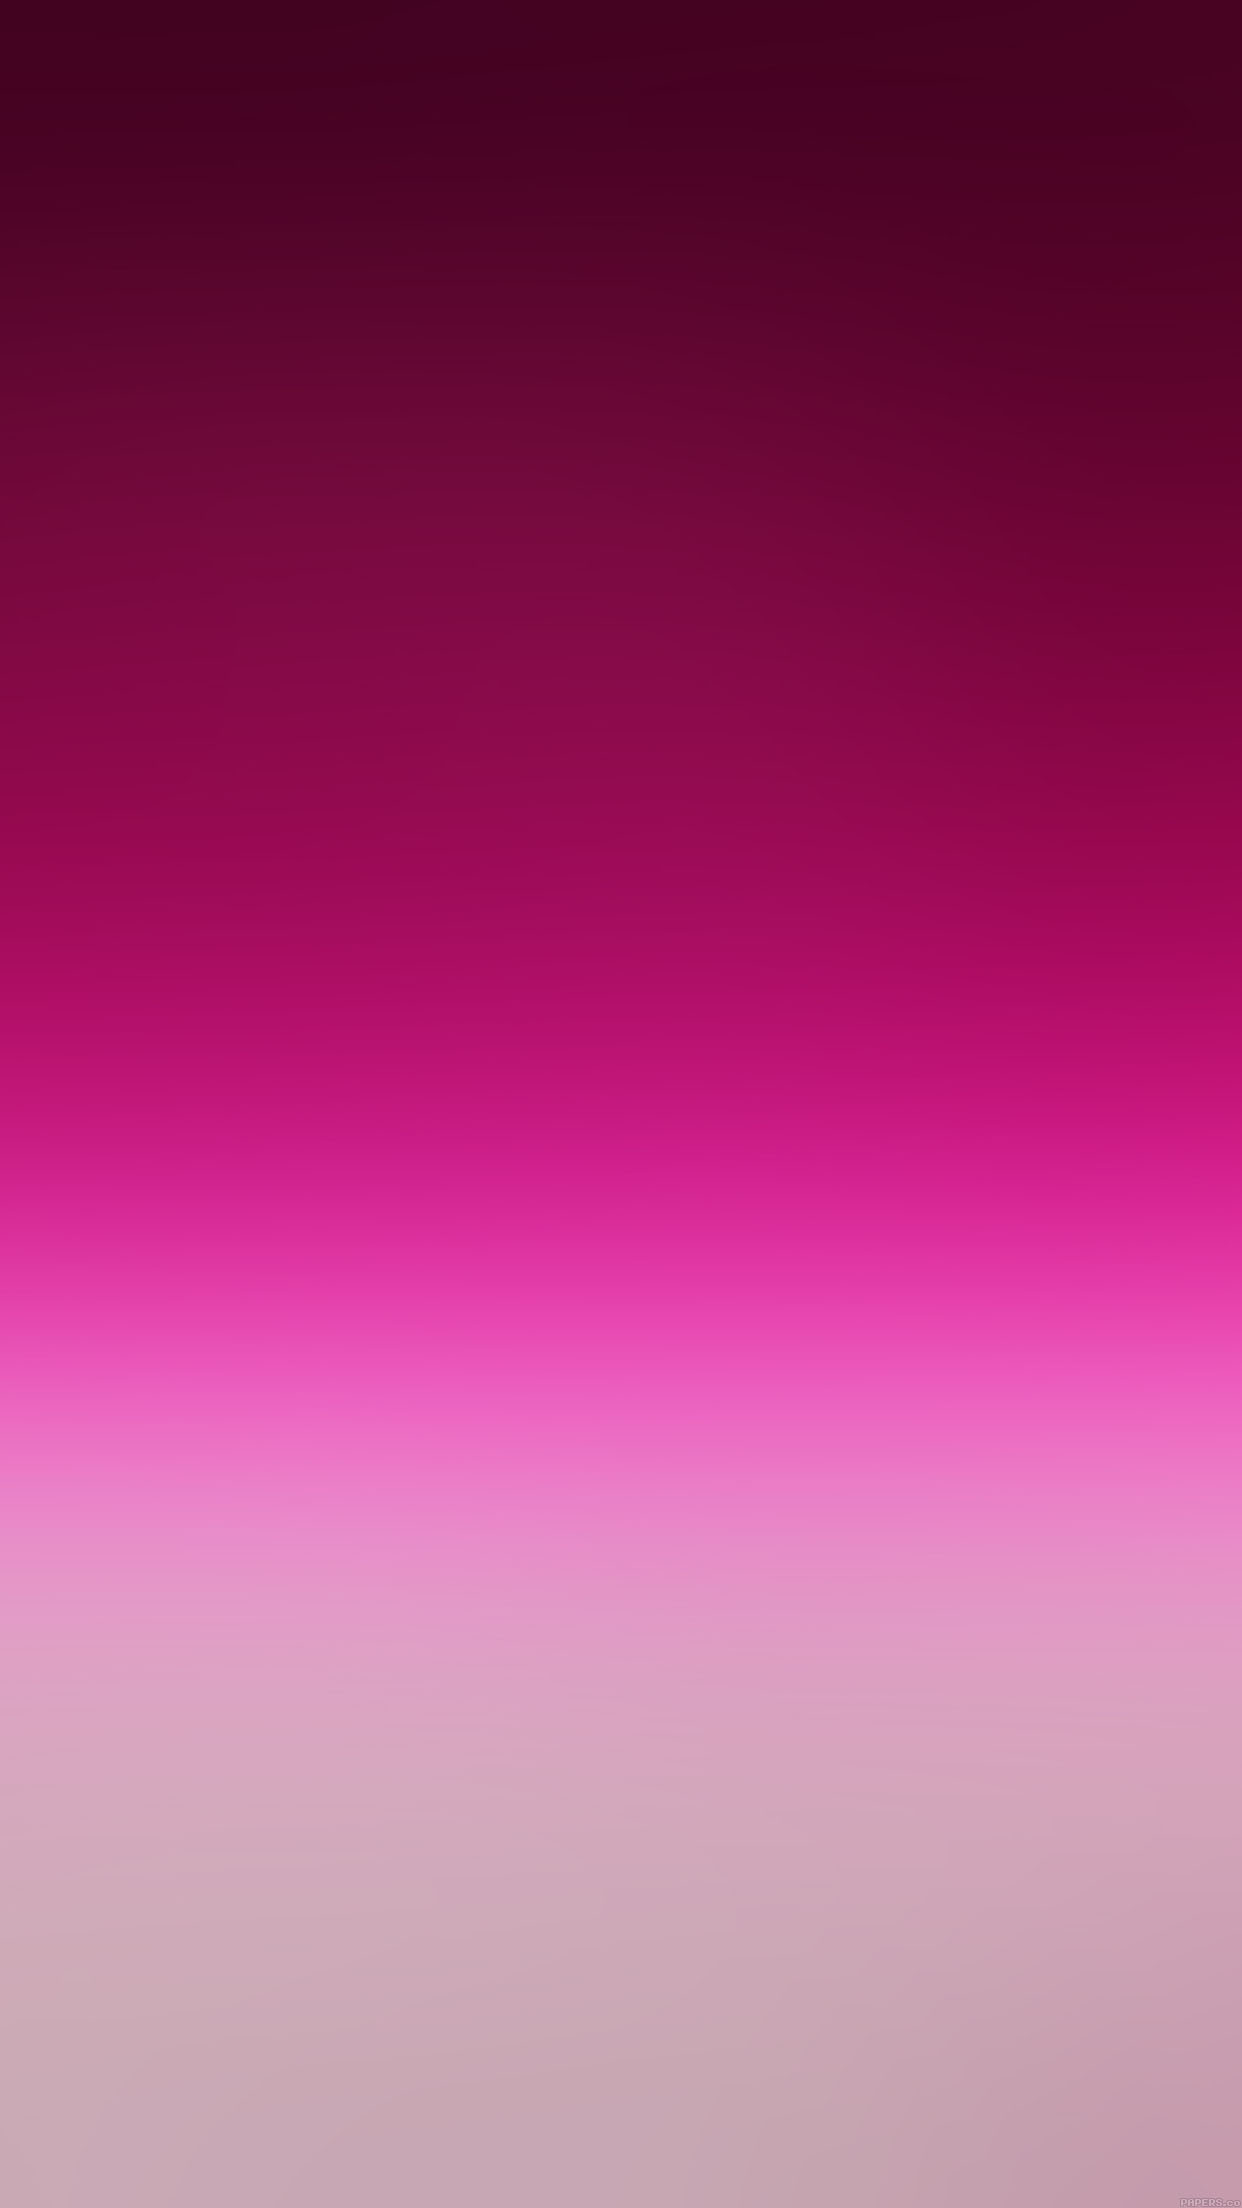 Iphone Se Fall Colors Wallpaper For Iphone X Iphonexpapers